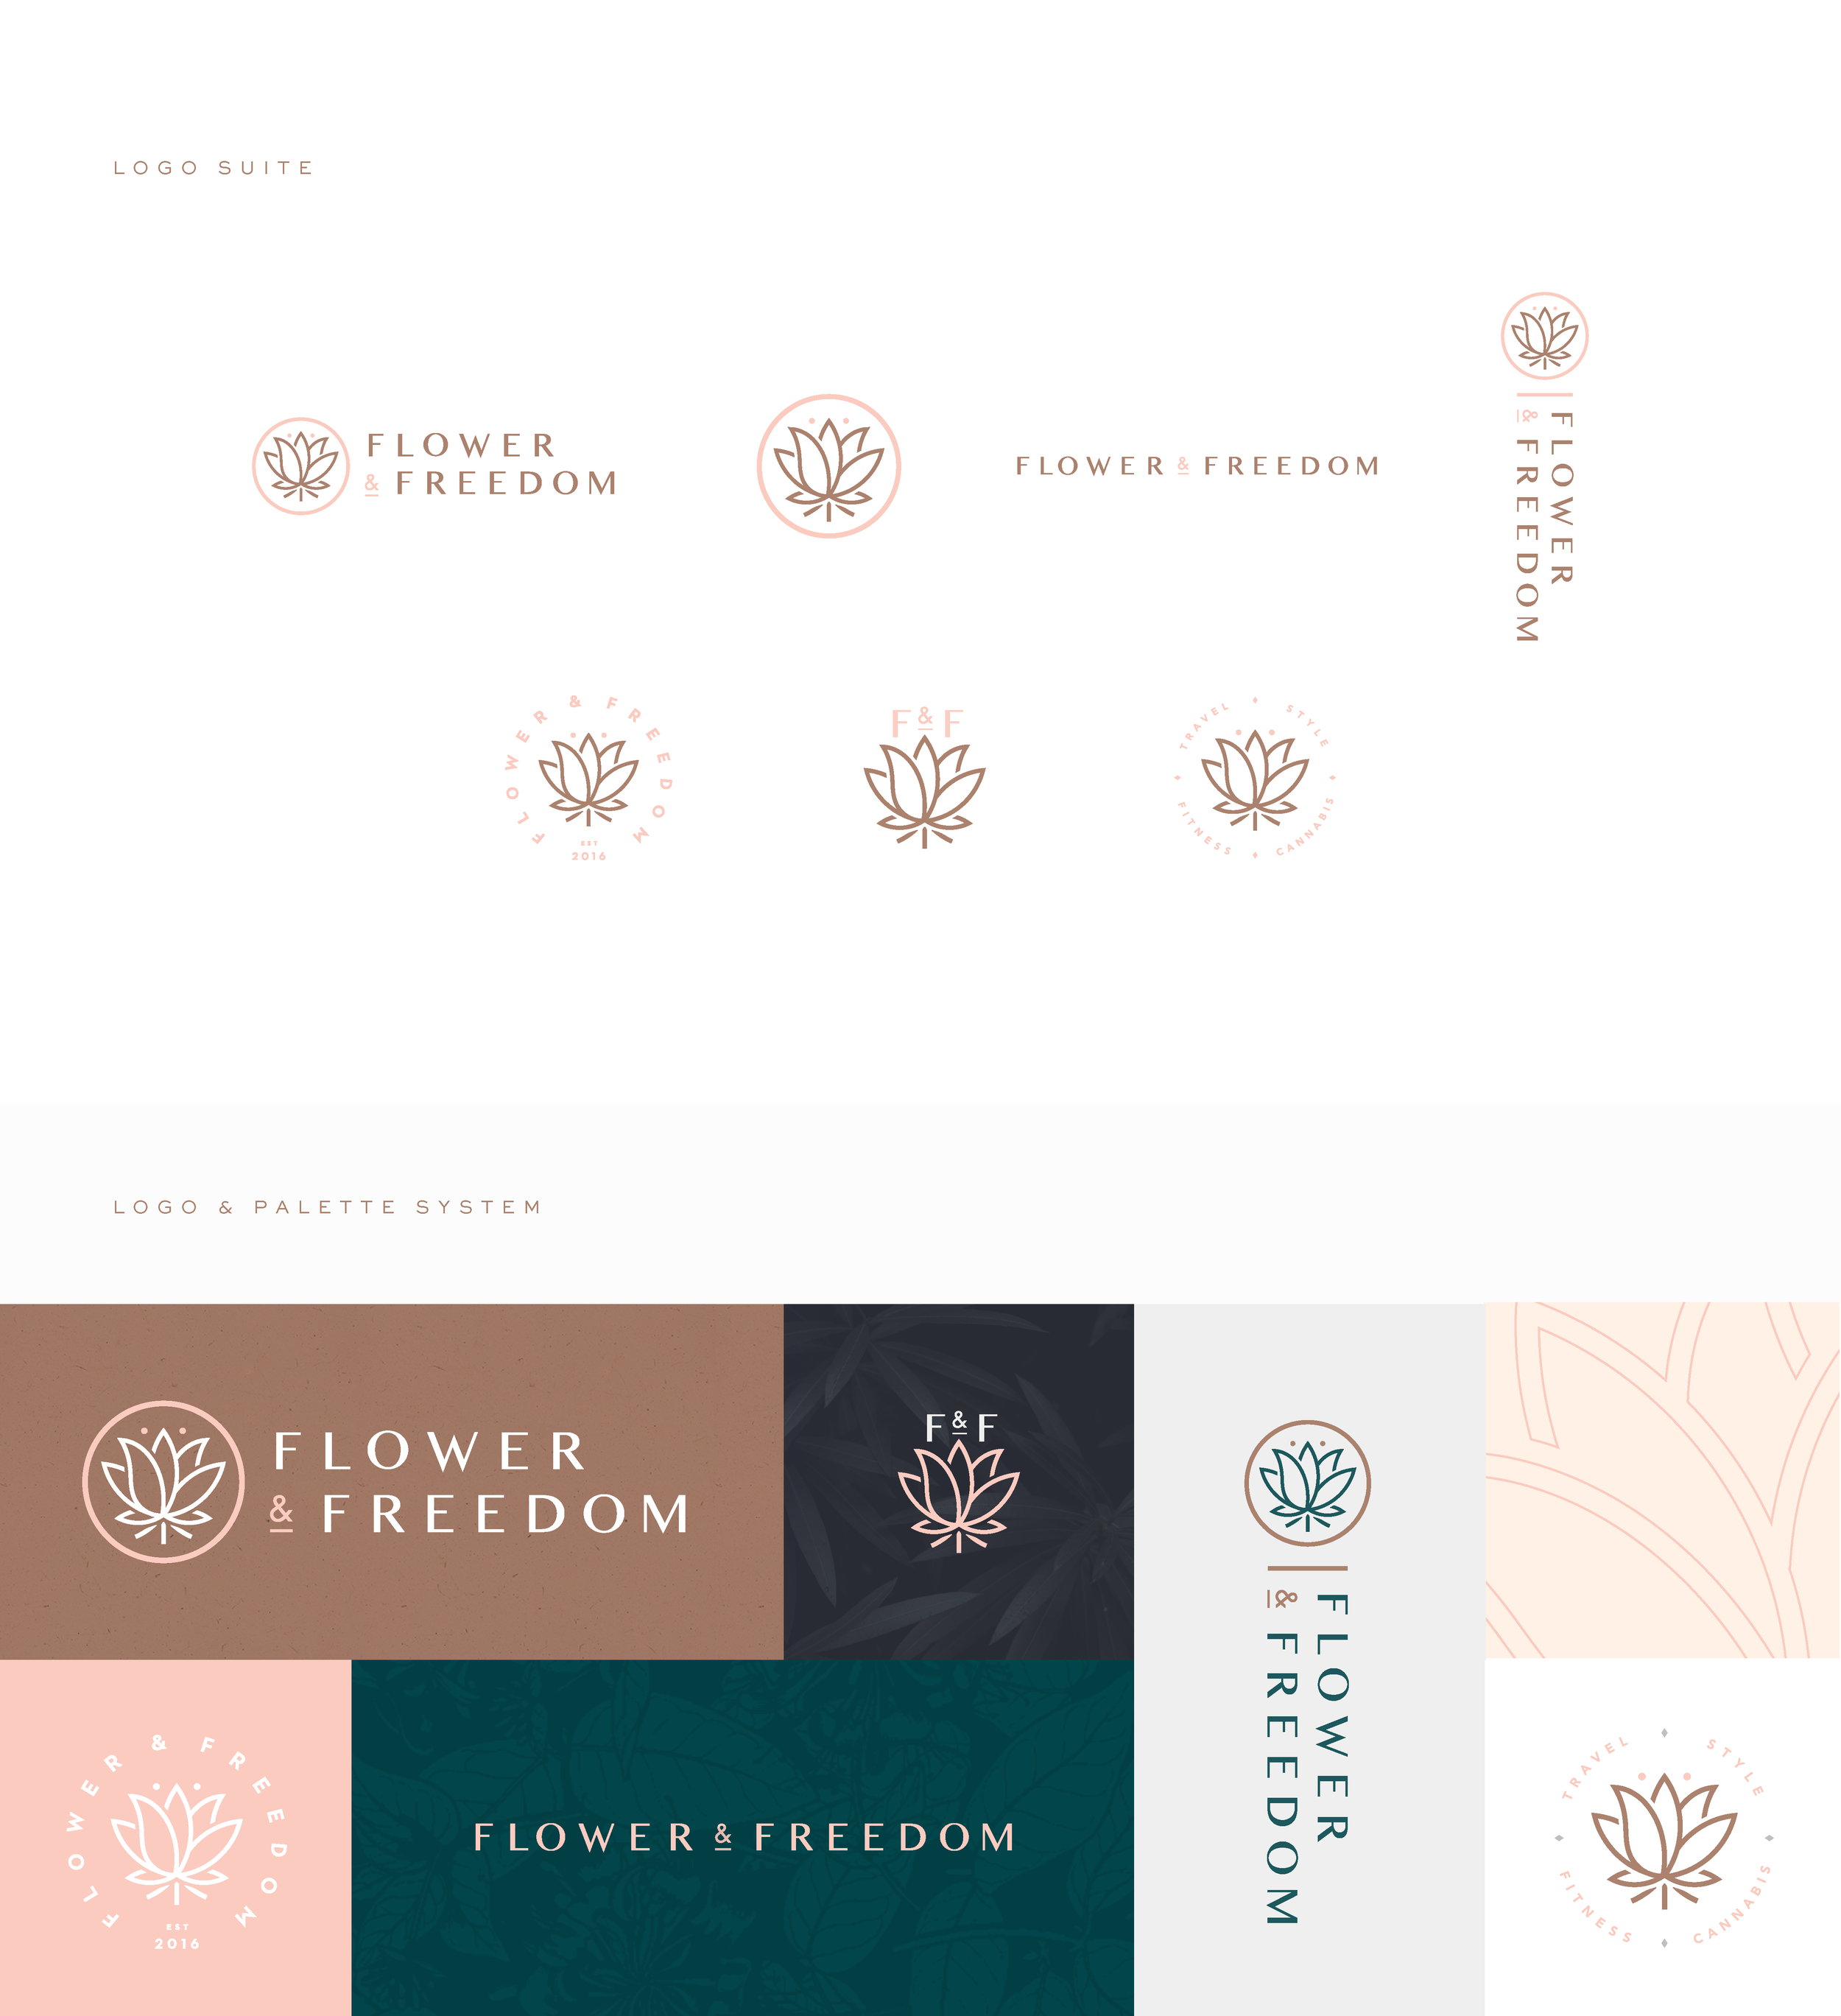 F&F_CaseStudy_Logo suite.png